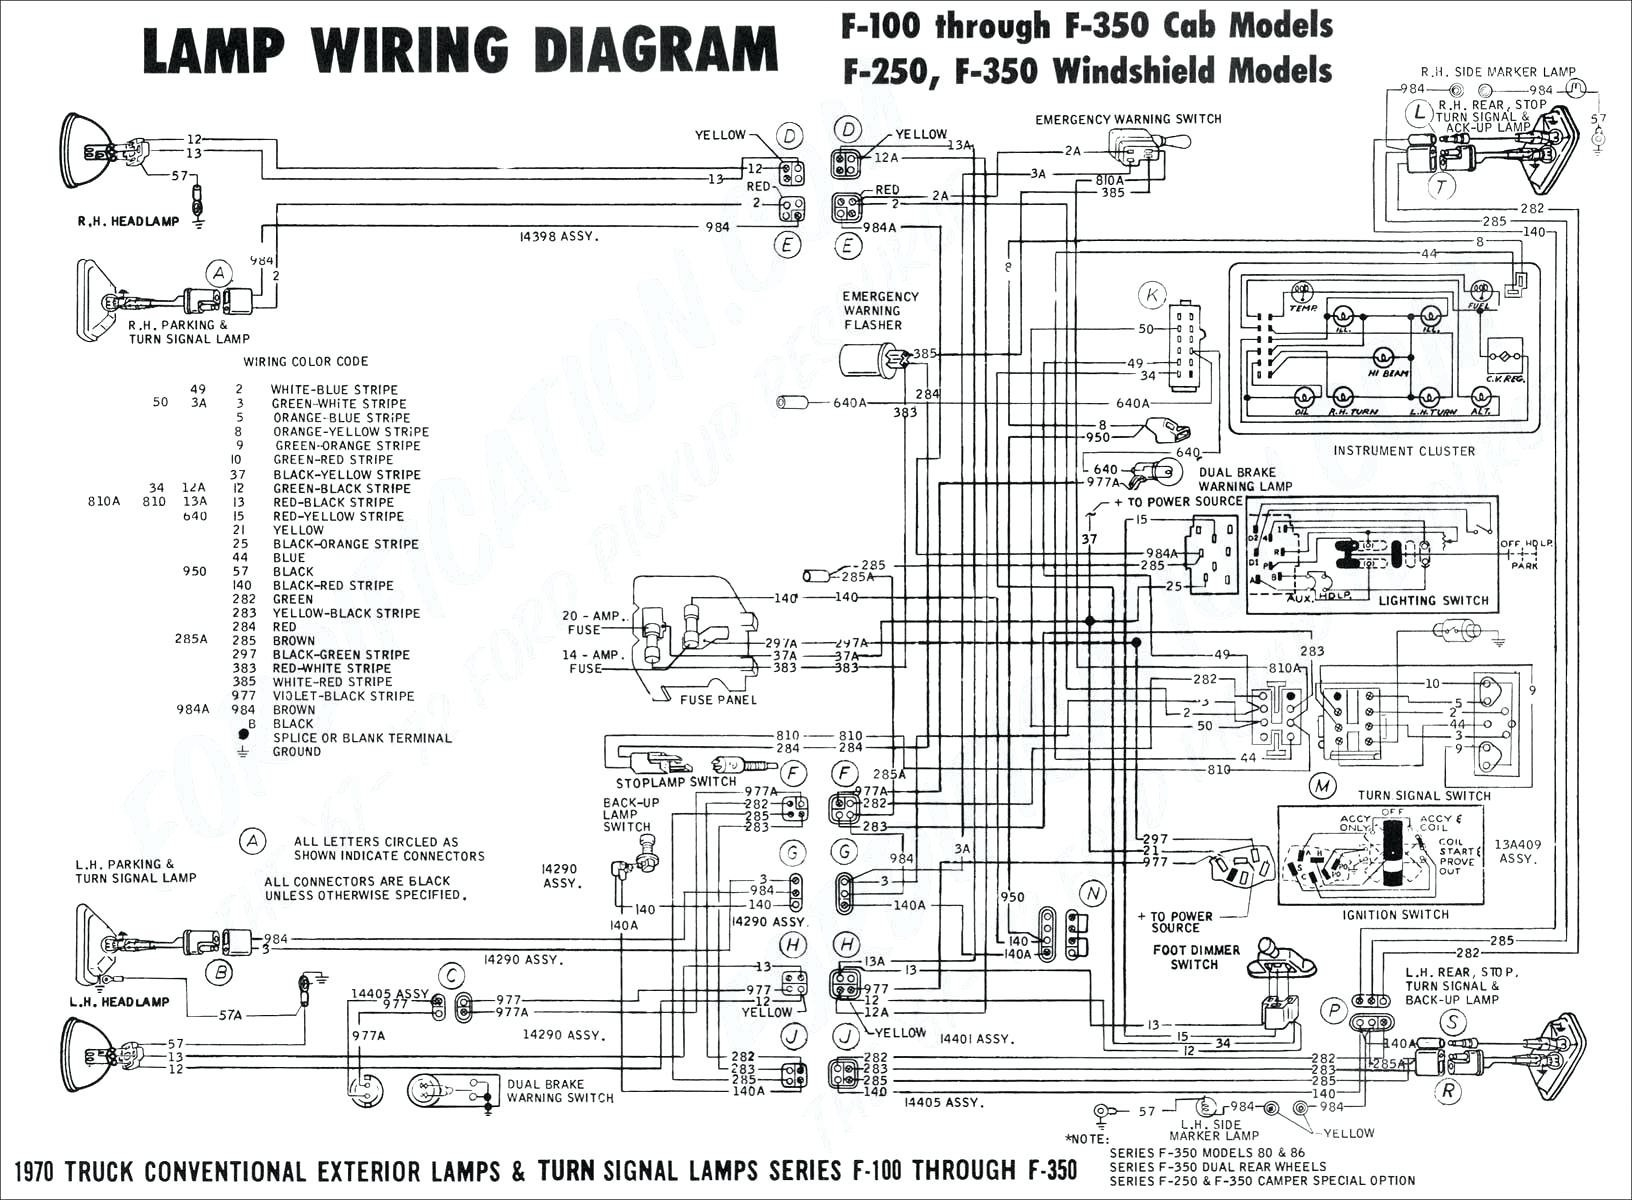 Turn Signal Wiring Diagram 800 Vulcan